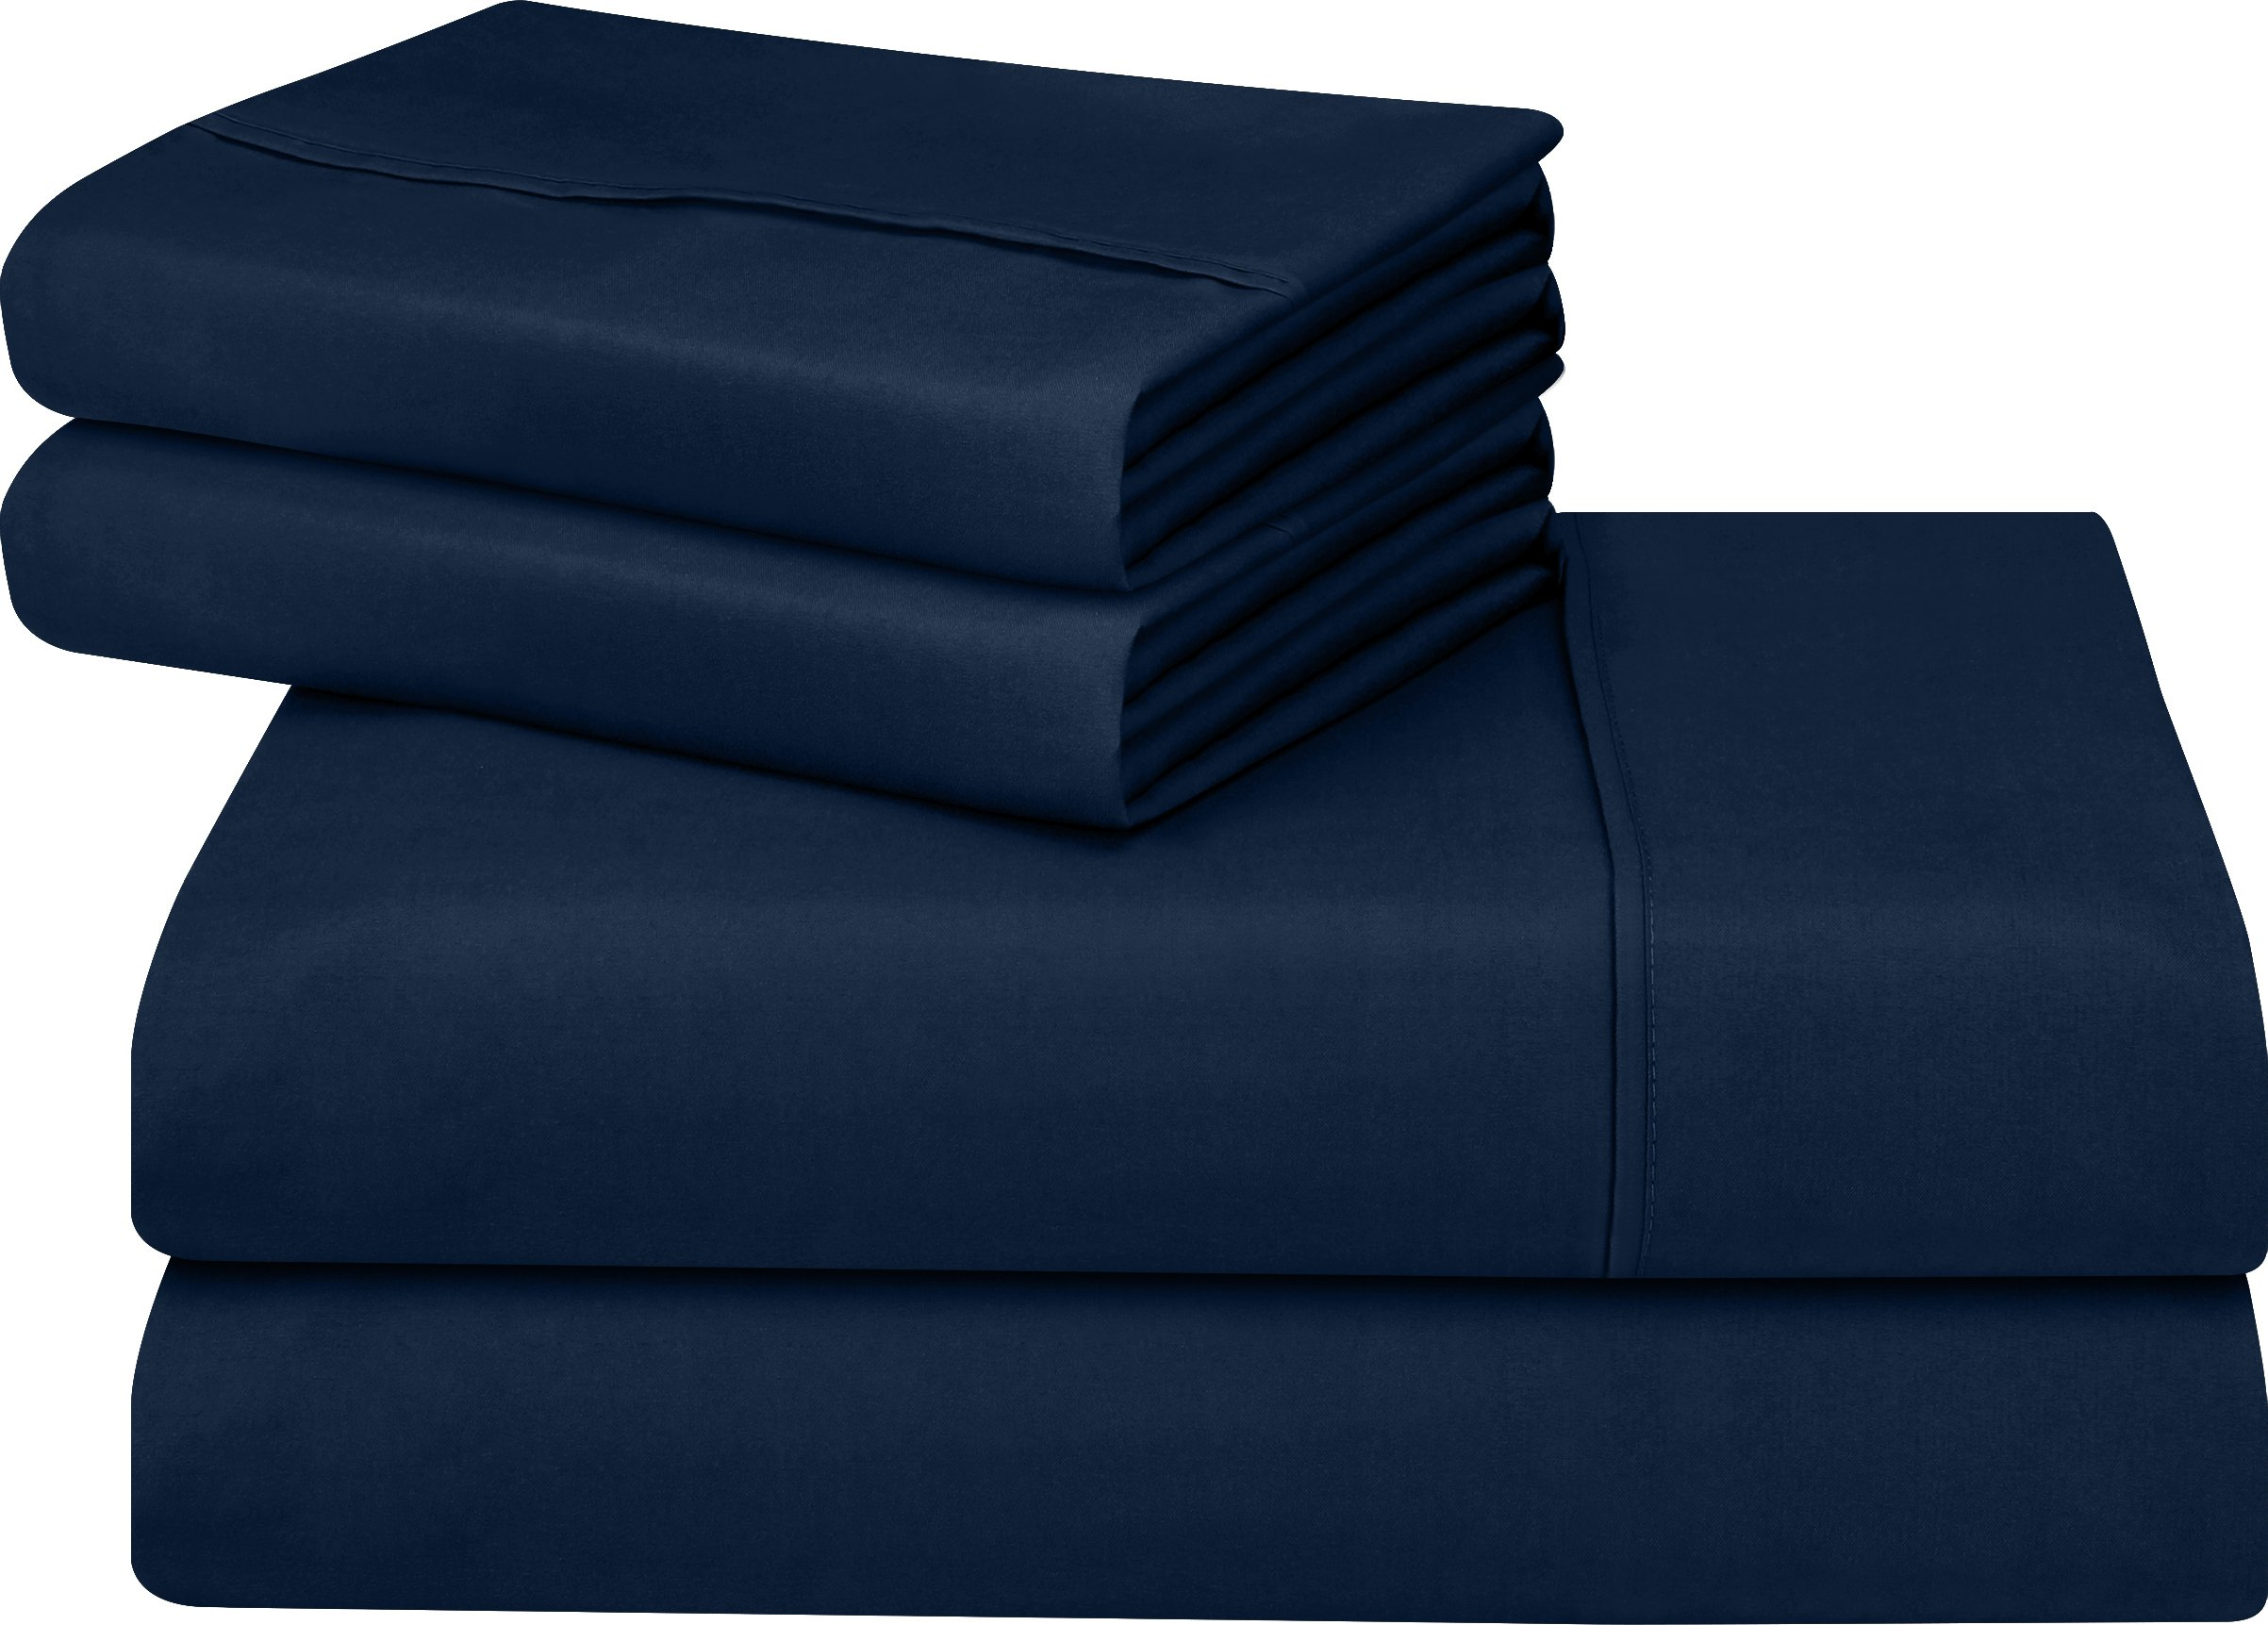 Utopia Bedding Soft Brushed Microfiber Wrinkle Fade and Stain Resistant 4-Piece Queen Bed Sheet Set - Navy